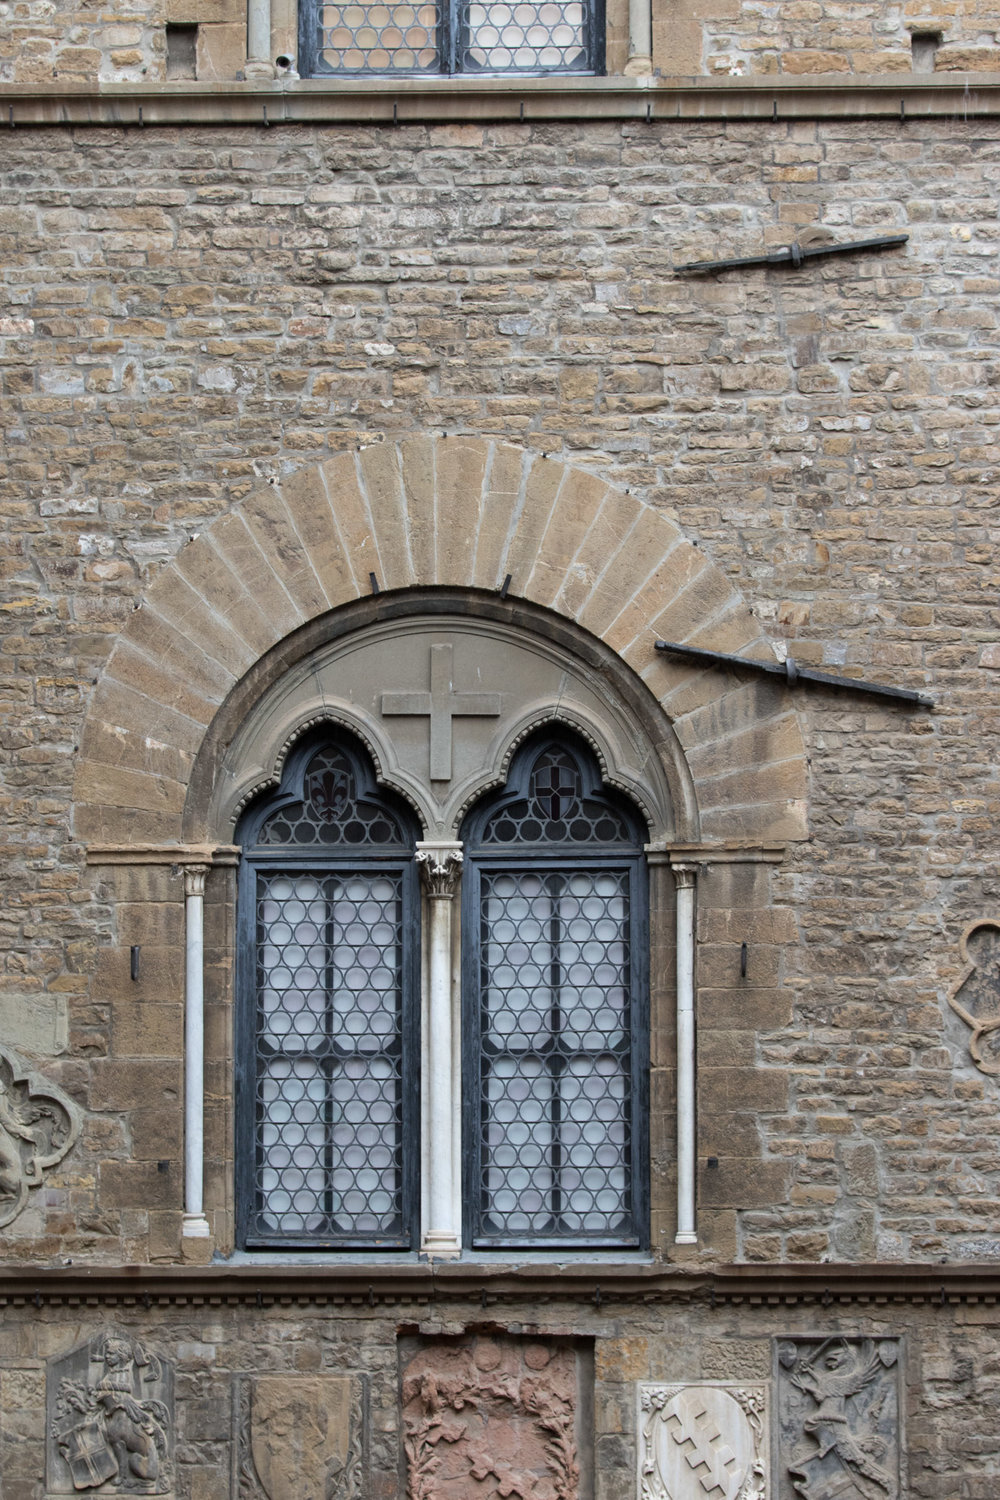 One of the many arched windows seen from inside the Bargello courtyard